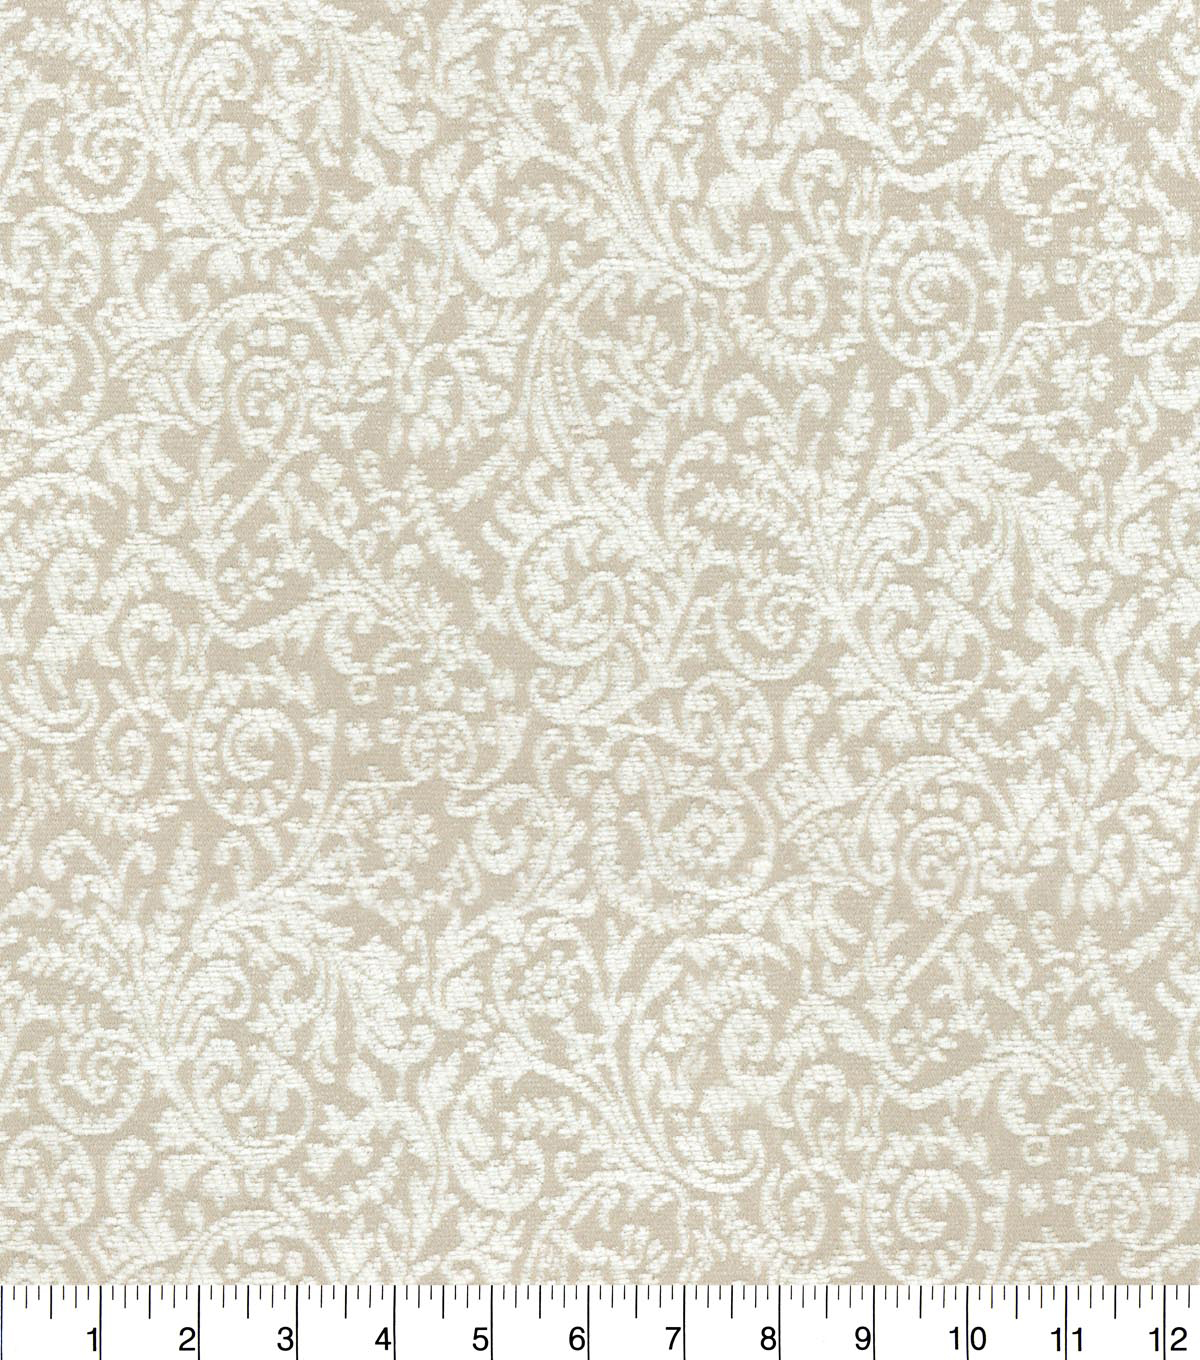 Home Decor 8\u0022x8\u0022 Fabric Swatch-Waverly New Stetson Pashmina